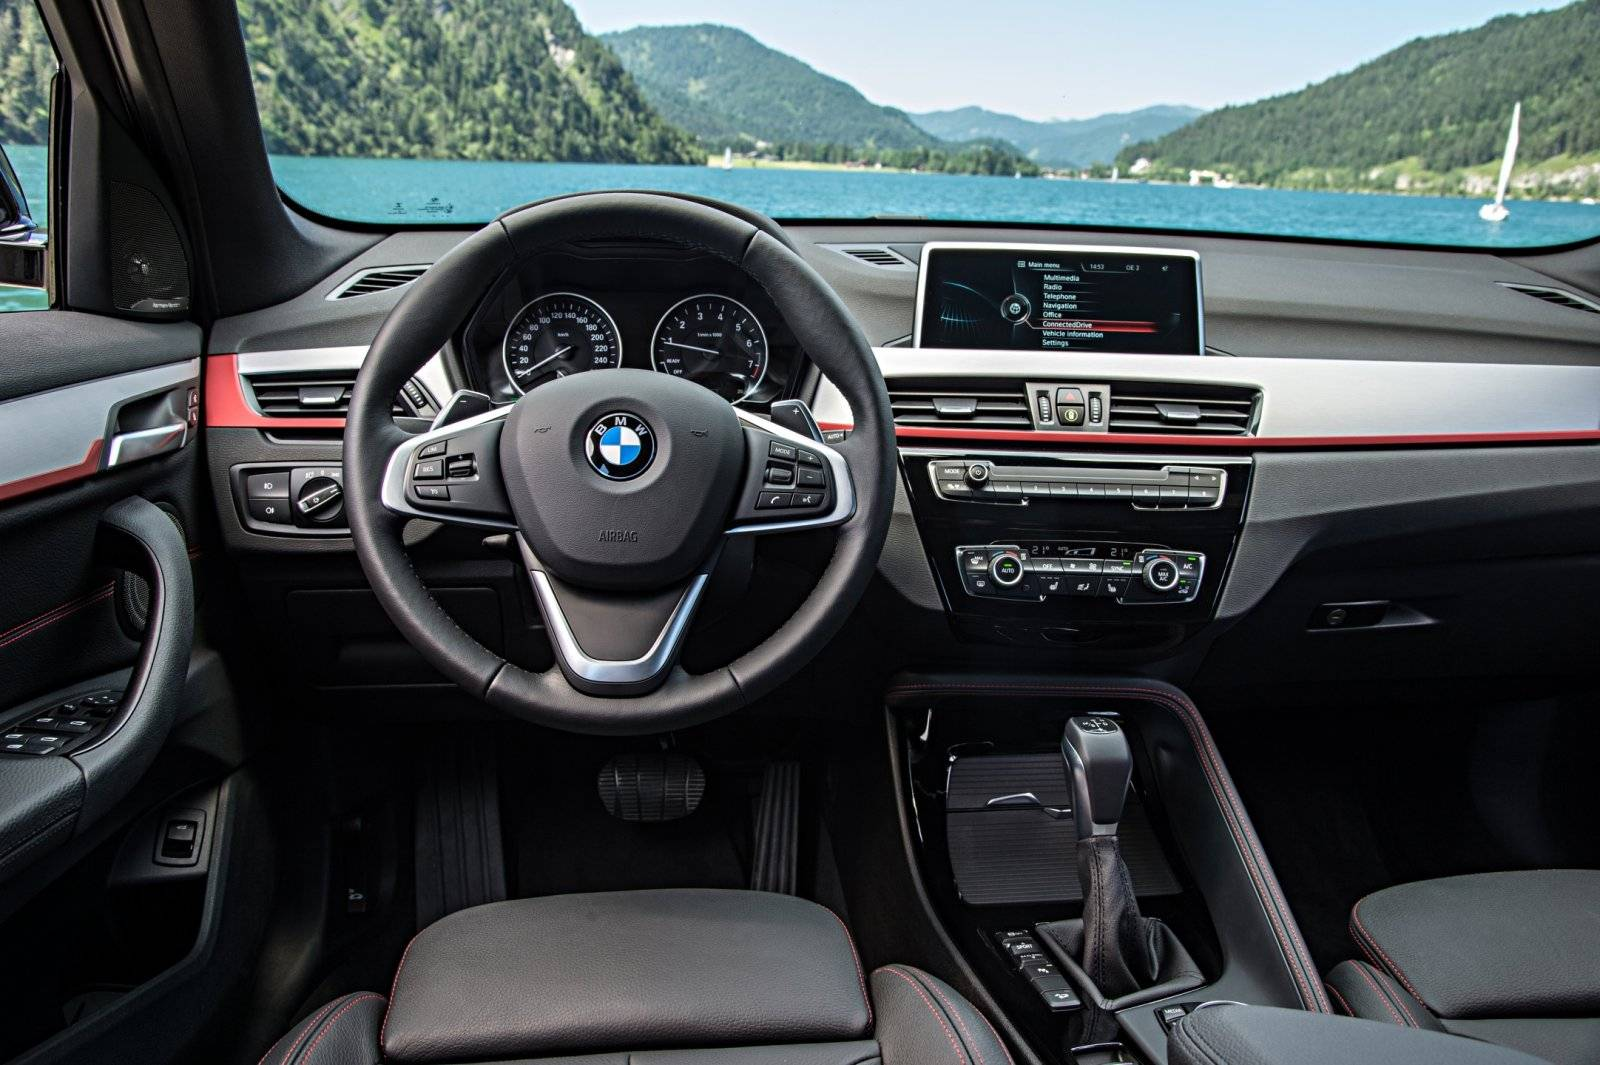 test autotest bmw x1 autotests. Black Bedroom Furniture Sets. Home Design Ideas